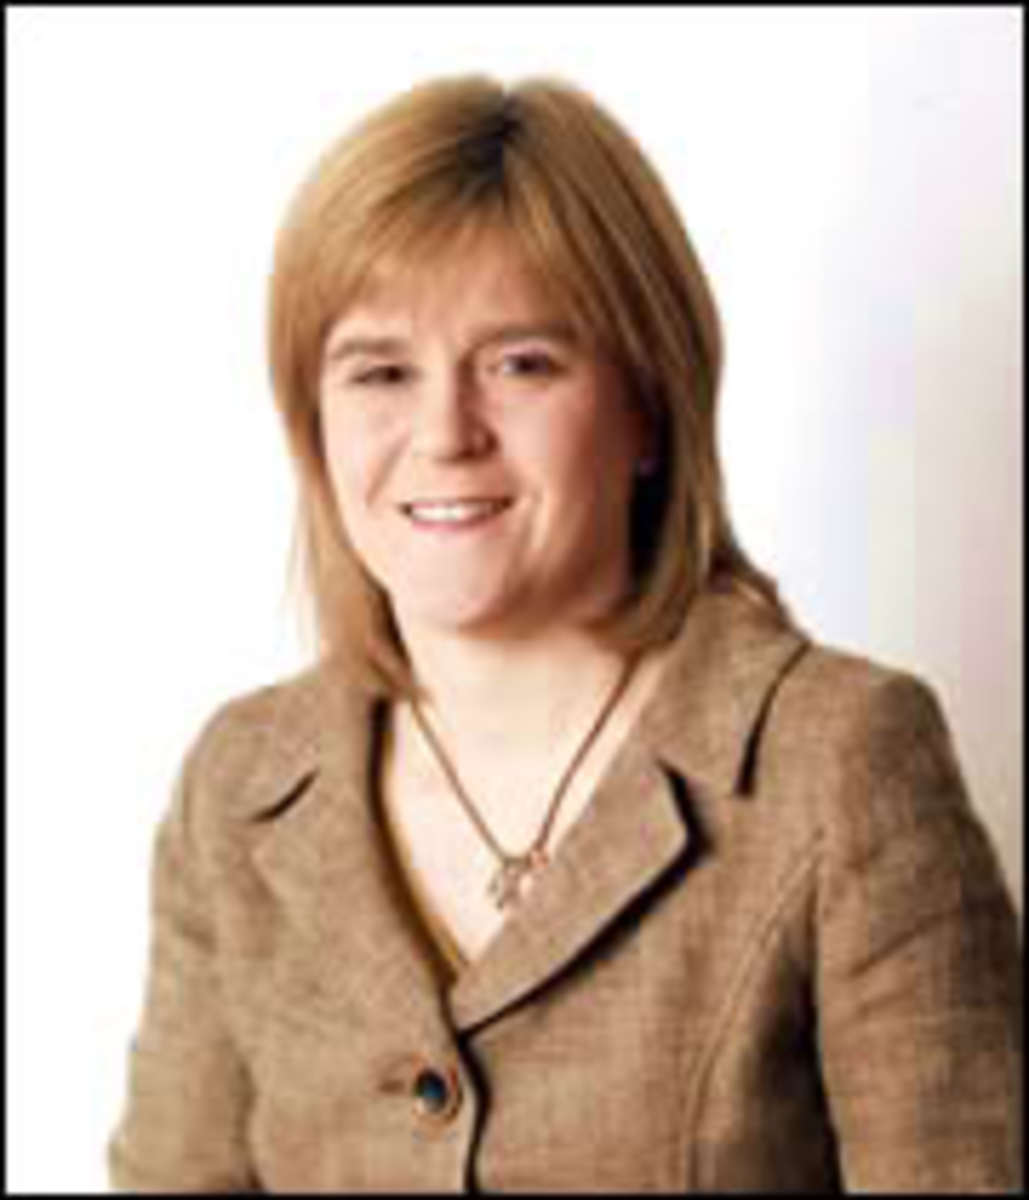 Nicola Sturgeon leader of the SNP and First Minister of Scotland.